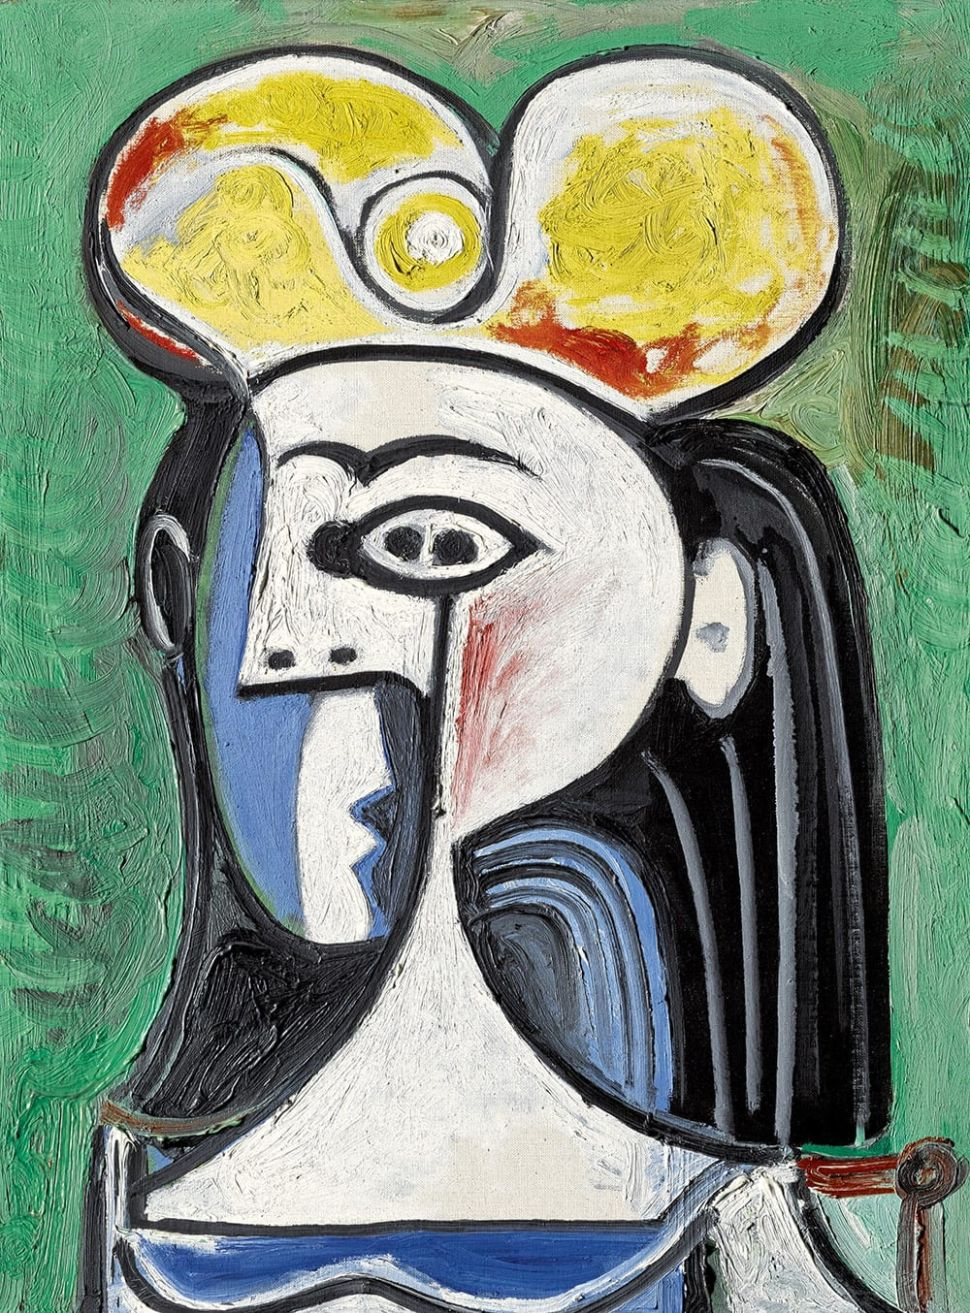 Picasso's Double-Profile Portrait of Jacqueline Roque Estimated to Sell for $12 Million